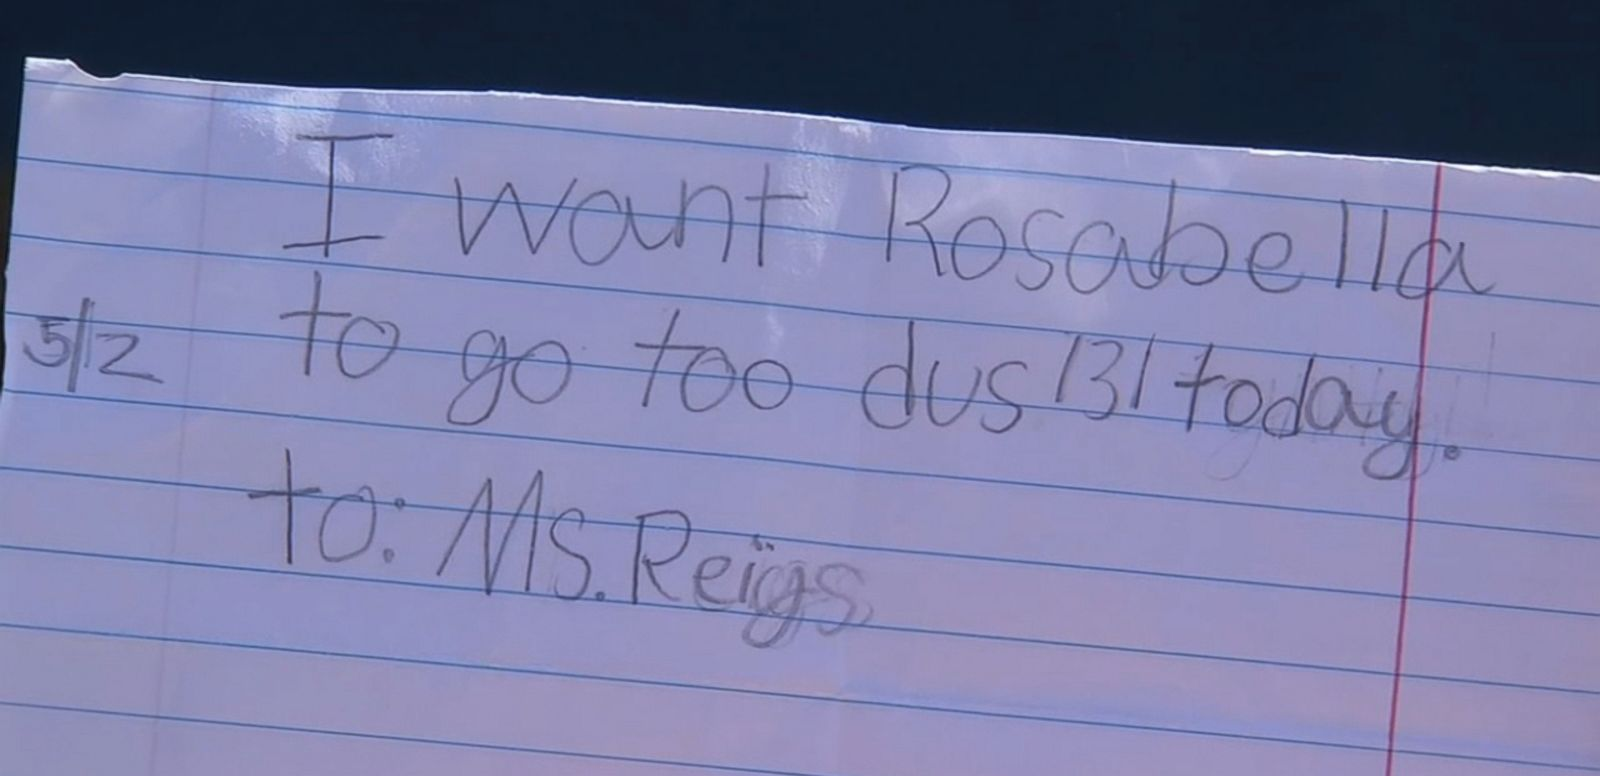 VIDEO: The second-grader's fake excuse note came with misspellings, but was accepted by school staff.